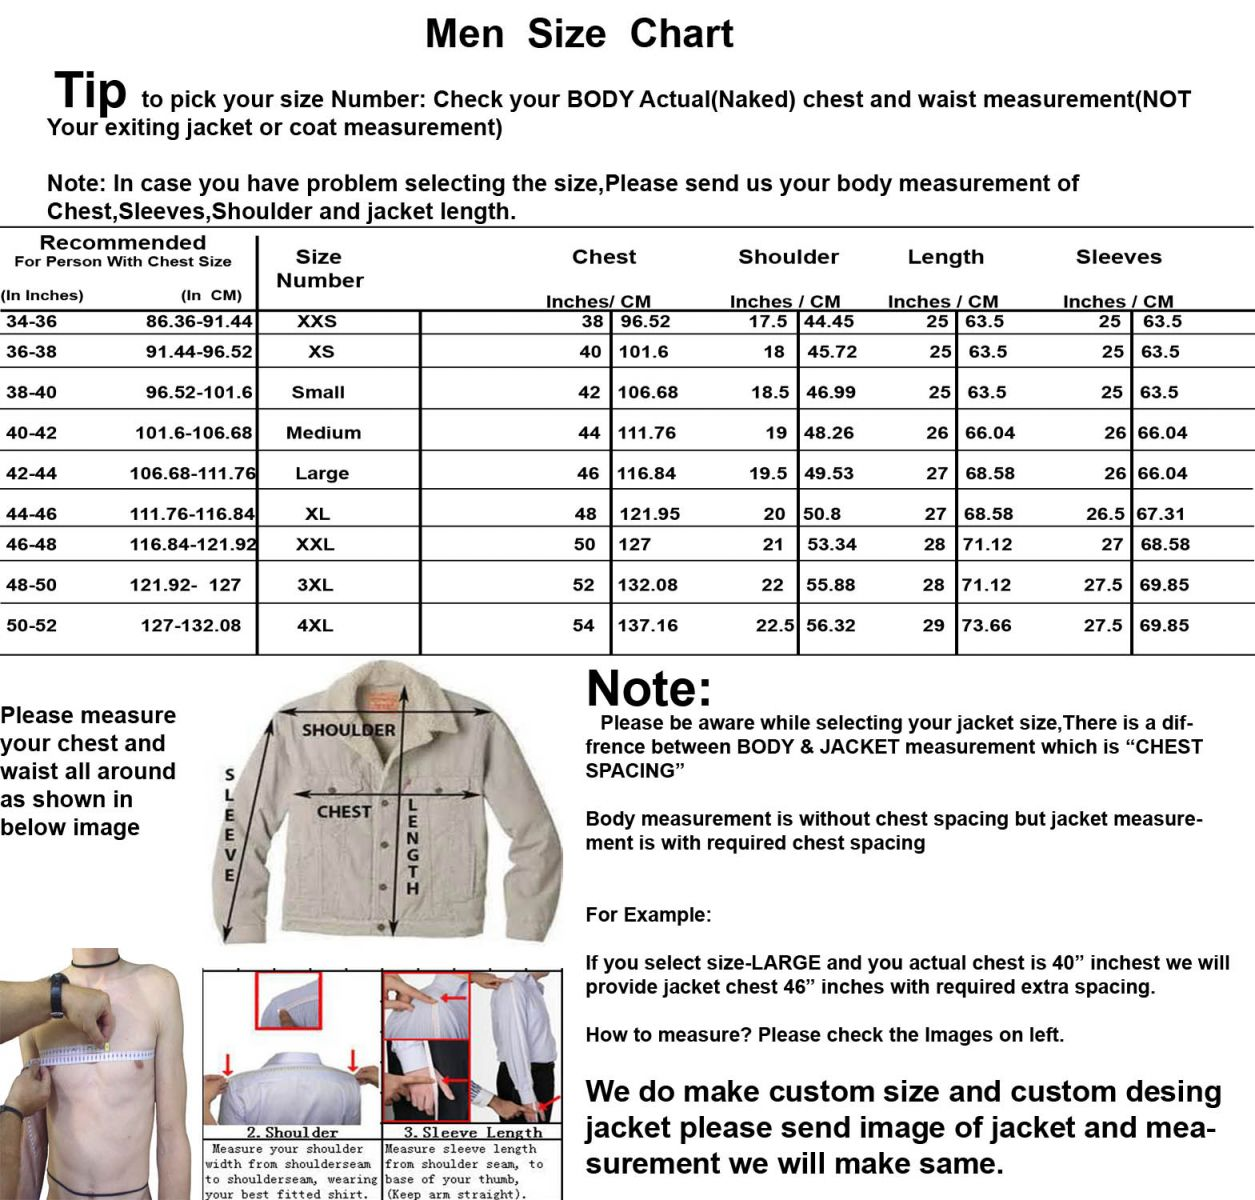 Men Size Chart For Men